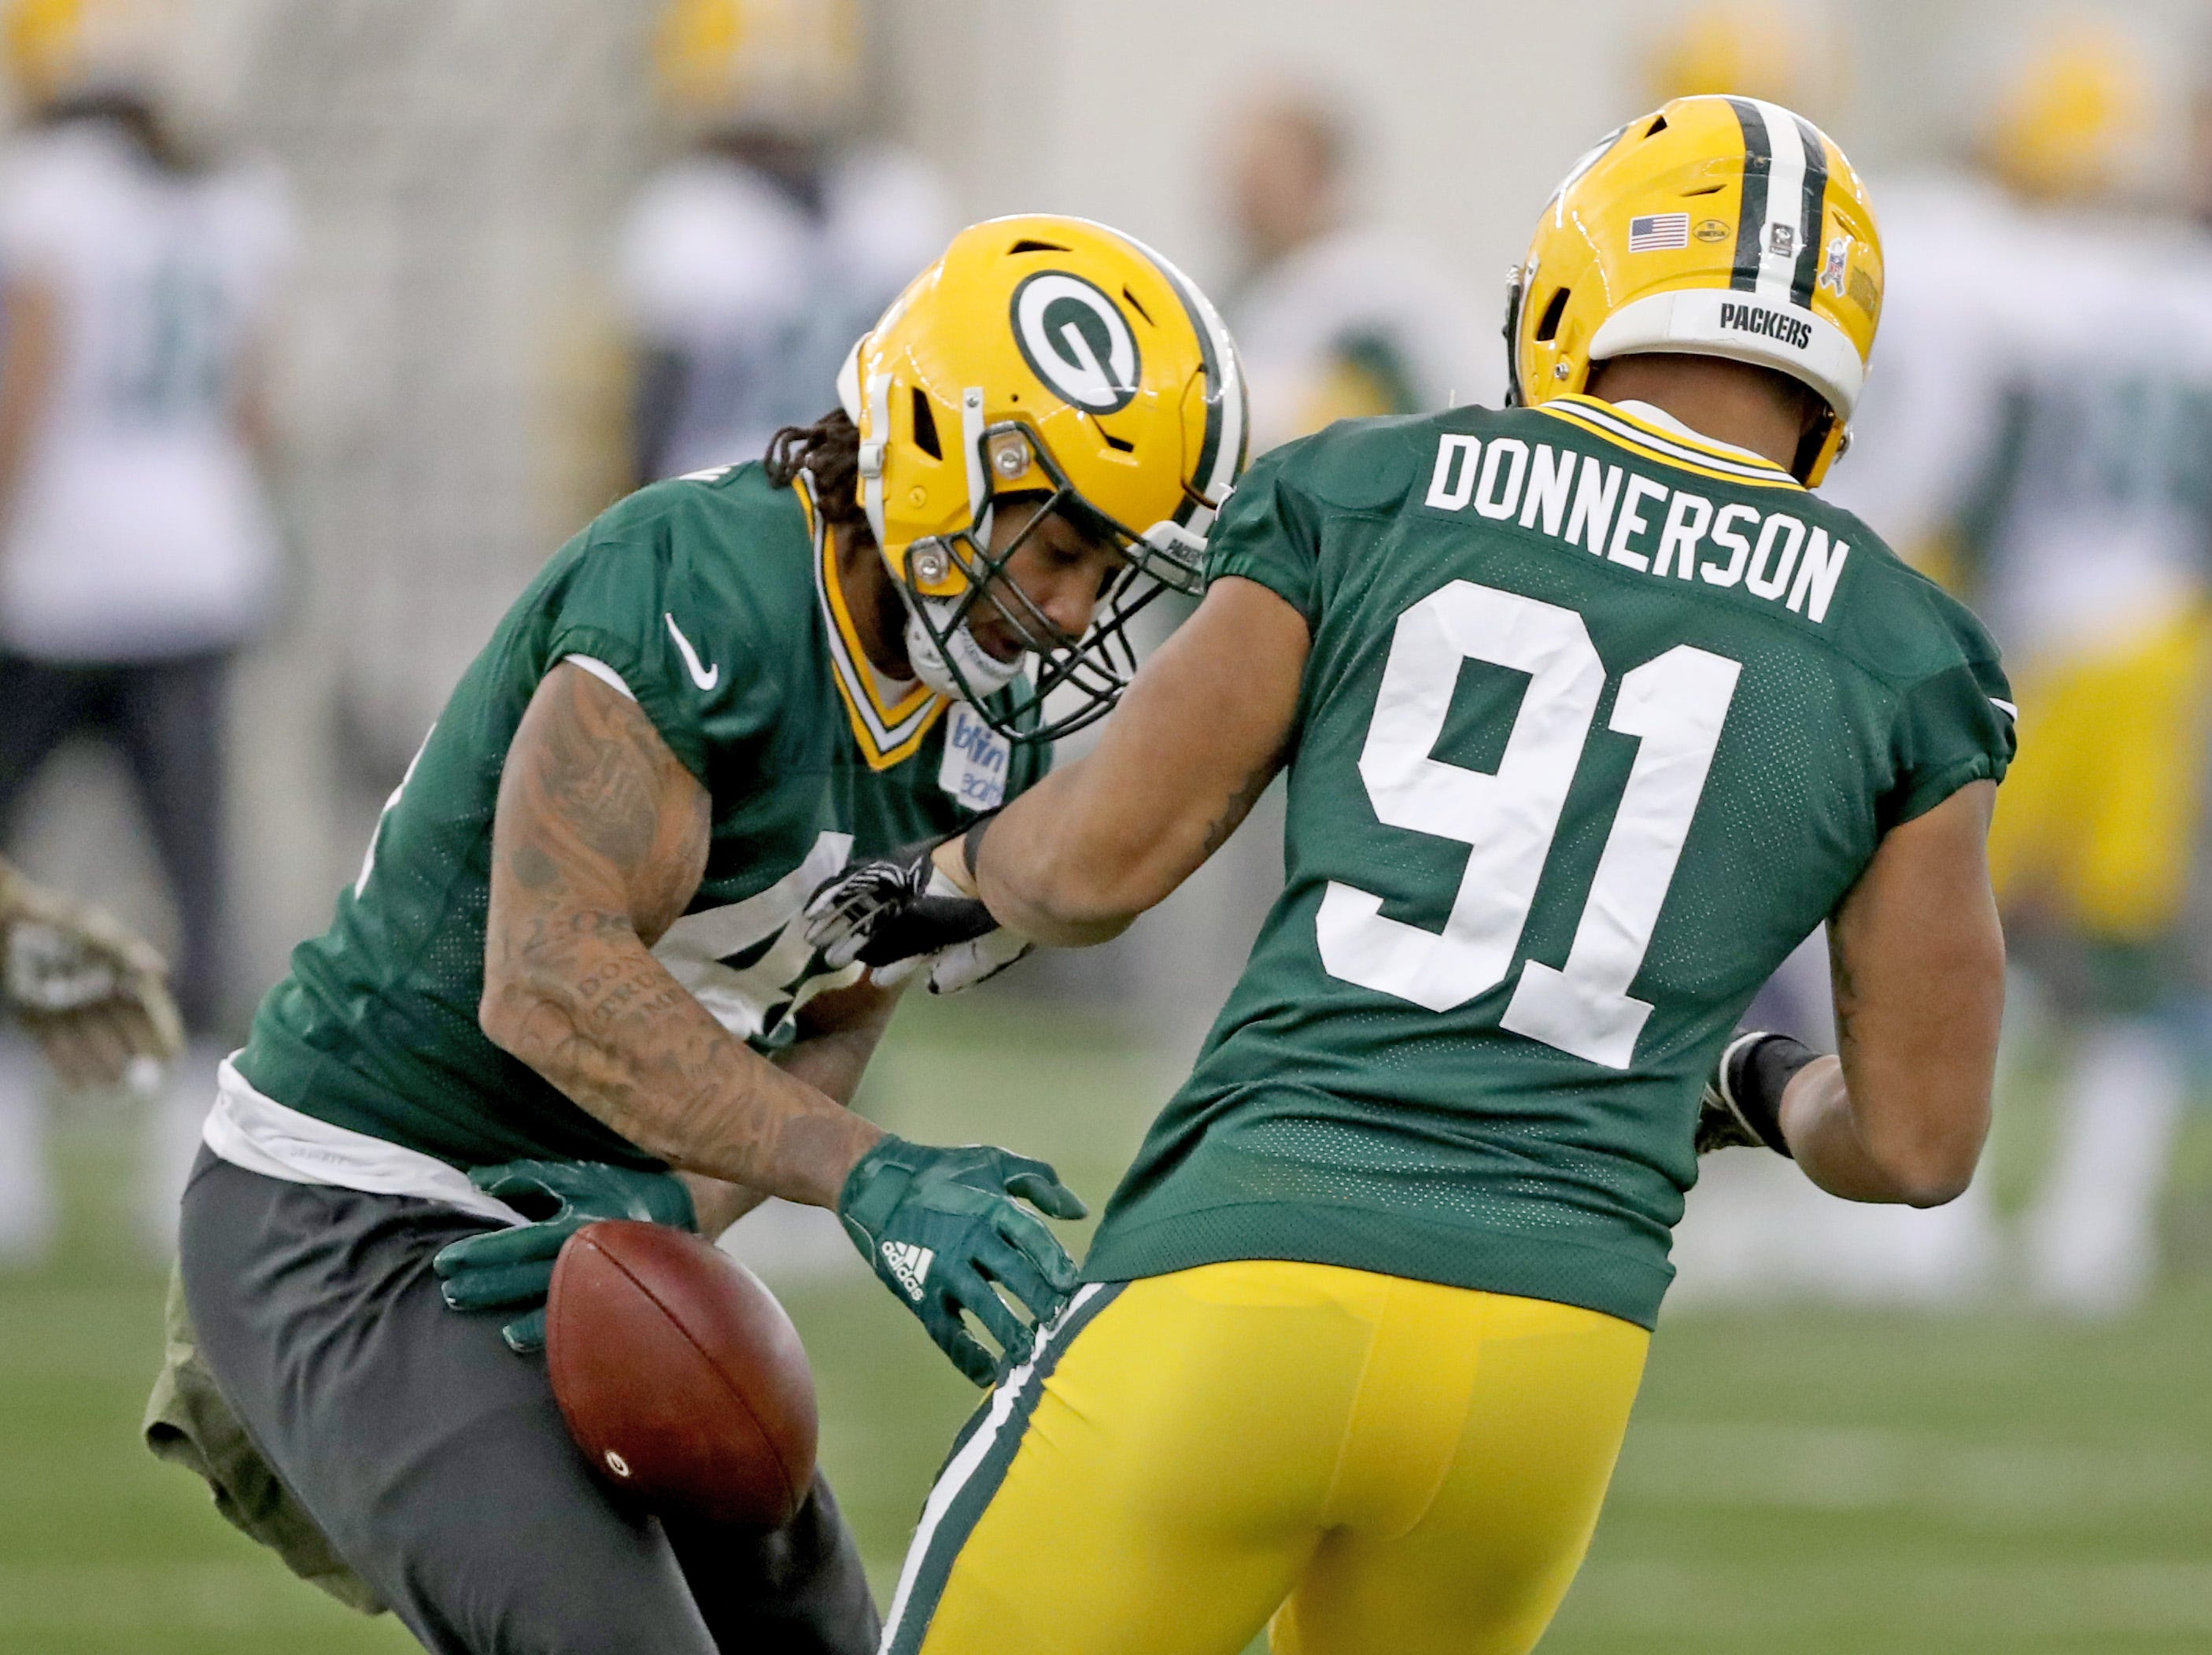 Green Bay Packers inside linebacker Antonio Morrison (44) and linebacker Kendall Donnerson (91) during practice Wednesday, November 21, 2018 inside the Don Hutson Center in Ashwaubenon, Wis.